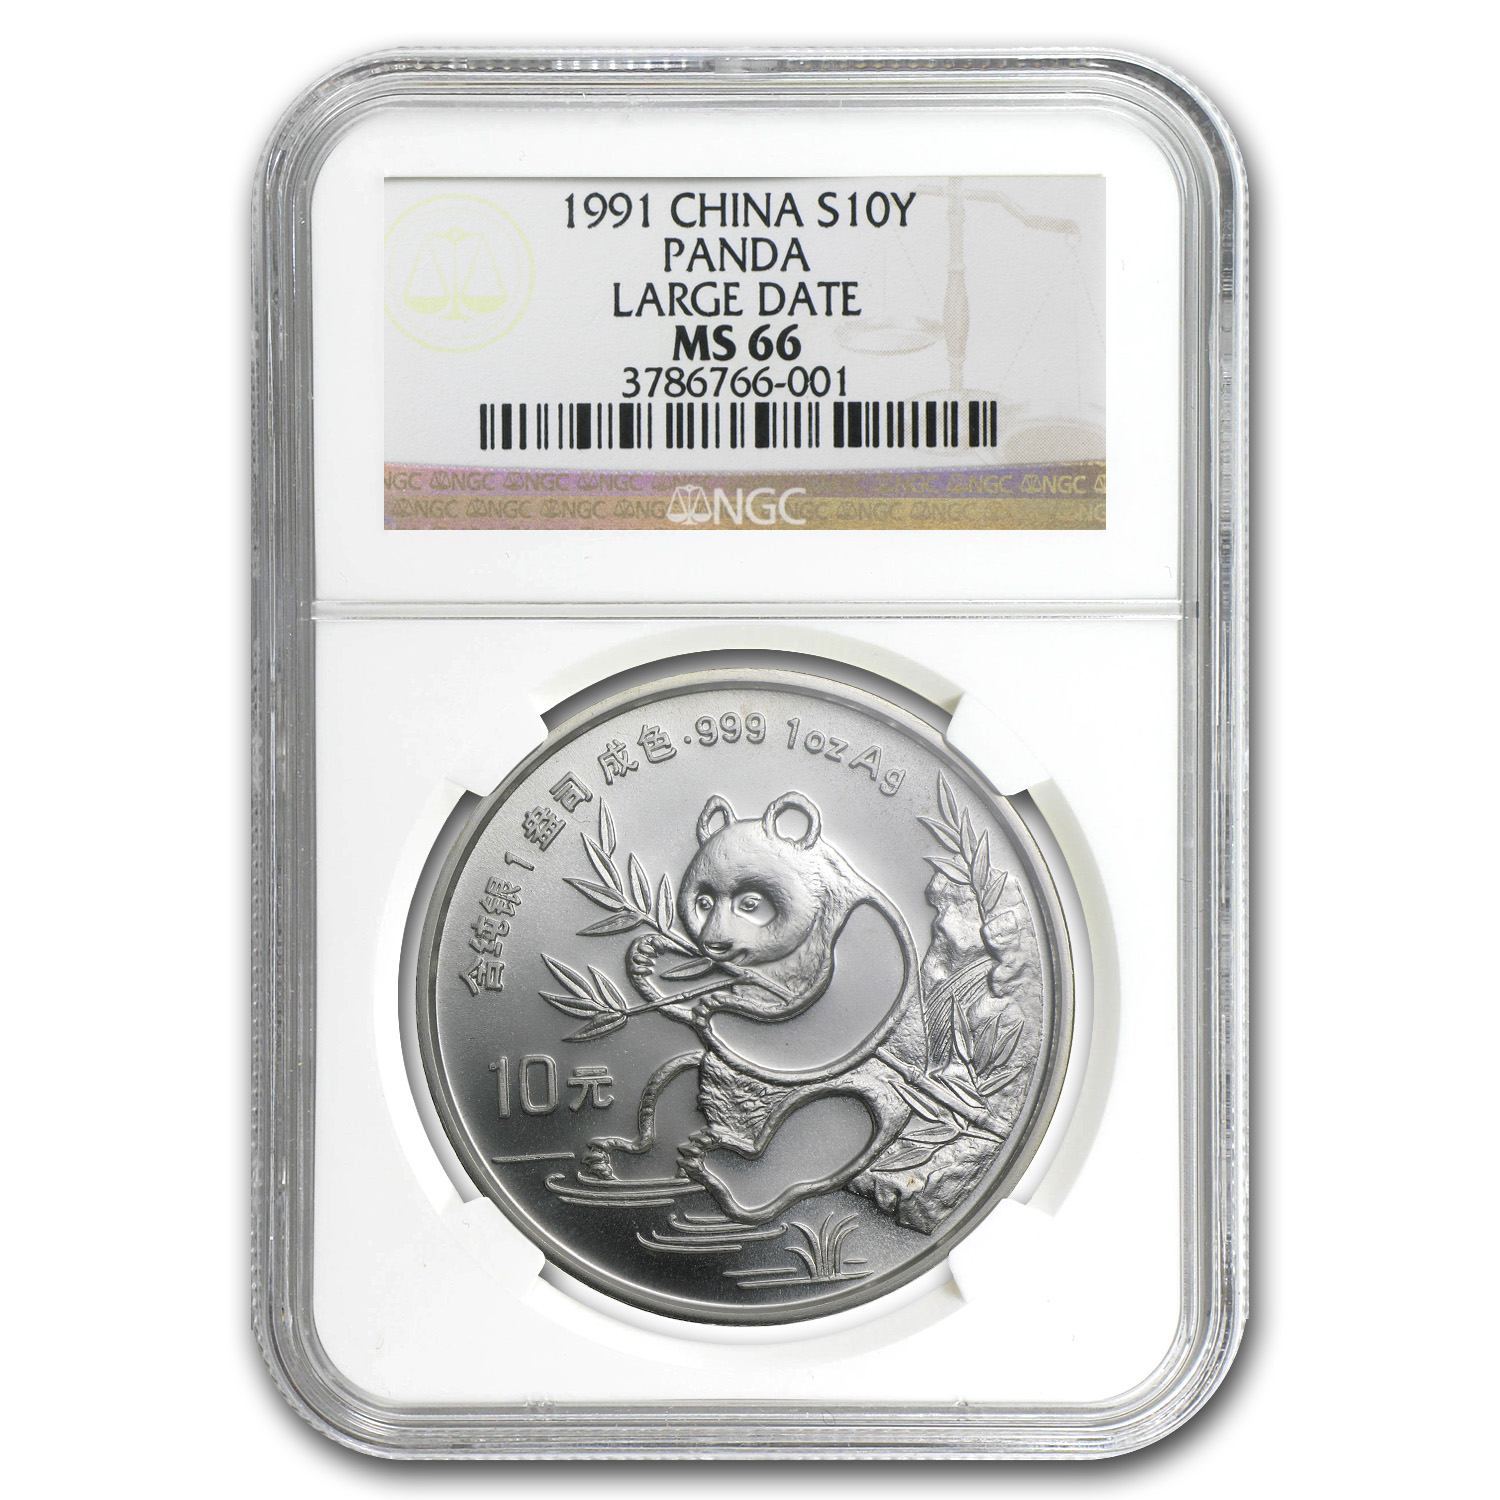 1991 1 oz Silver Chinese Panda MS-66 NGC (Large Date)